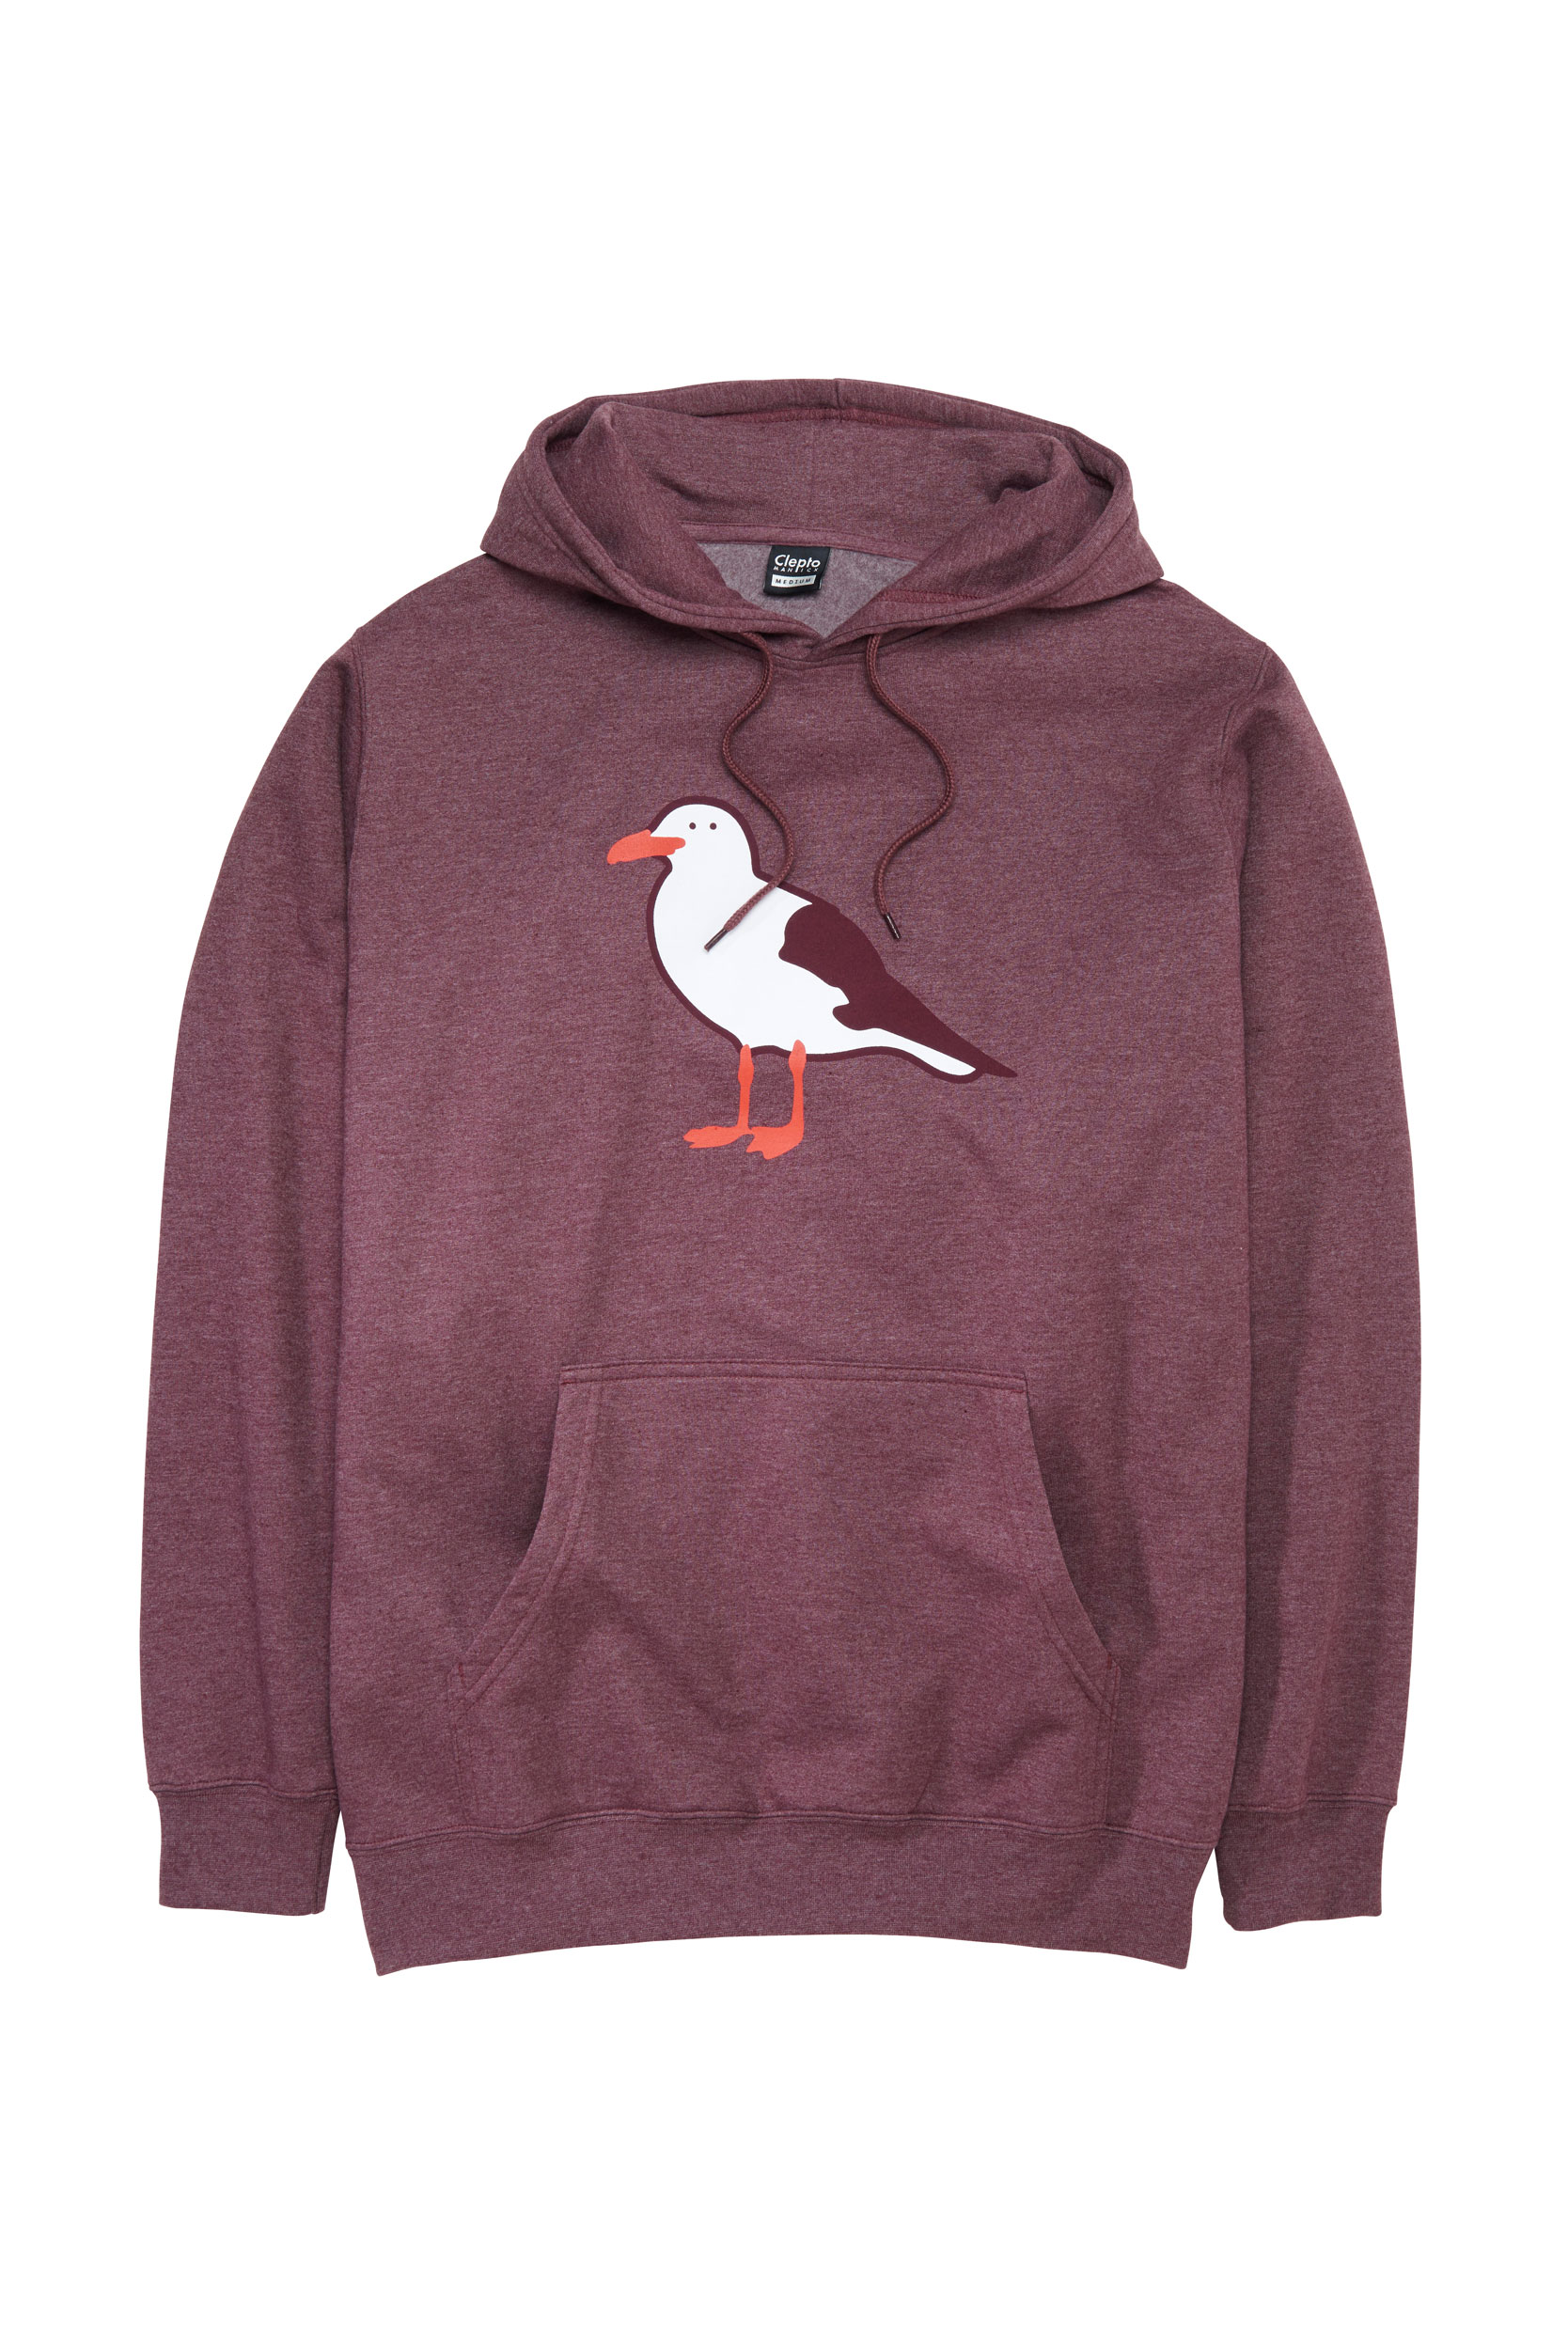 Cleptomanicx_Gull_Hooded_Sweat.jpg